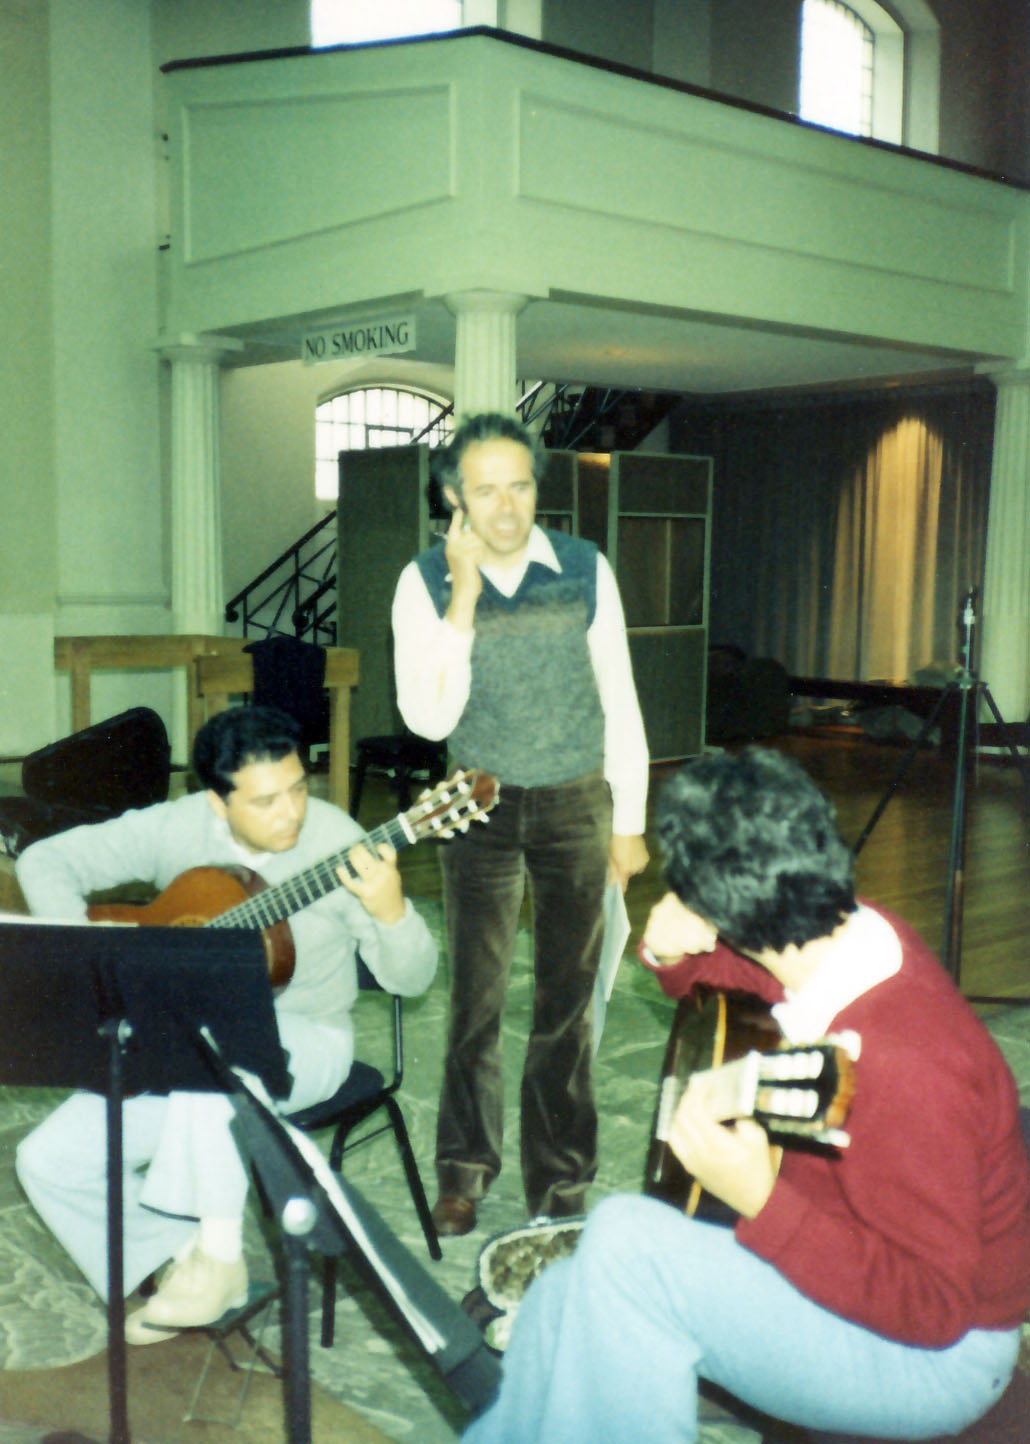 Celin, Wilhelm Hellweg and Pepe recording session ¨Famous Spanish Dances¨